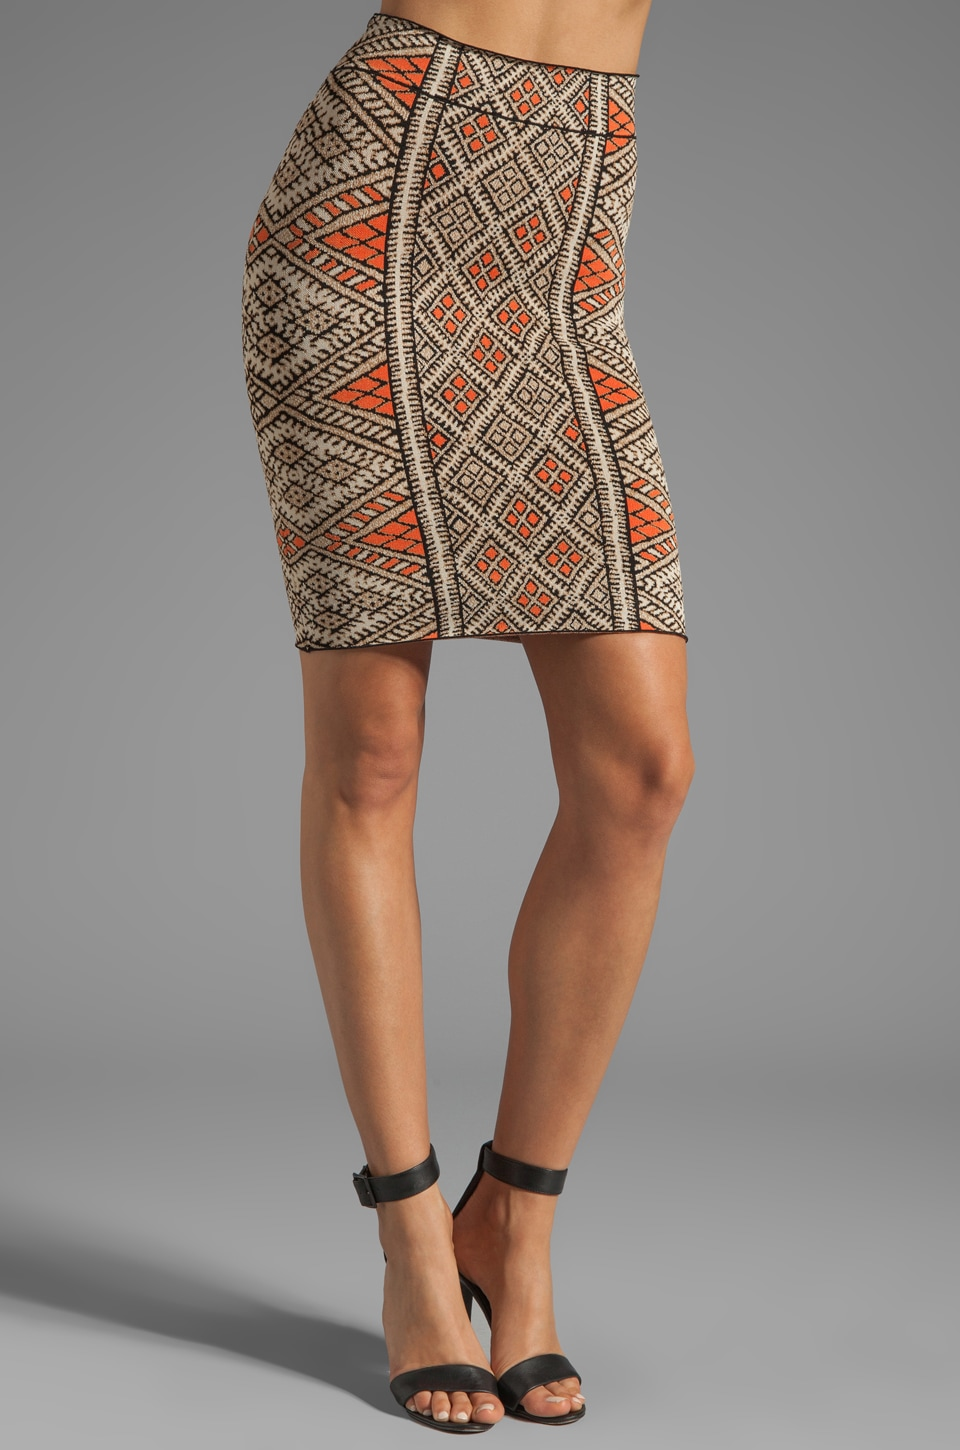 BCBGMAXAZRIA Pencil Skirt in Coral Reef Combo